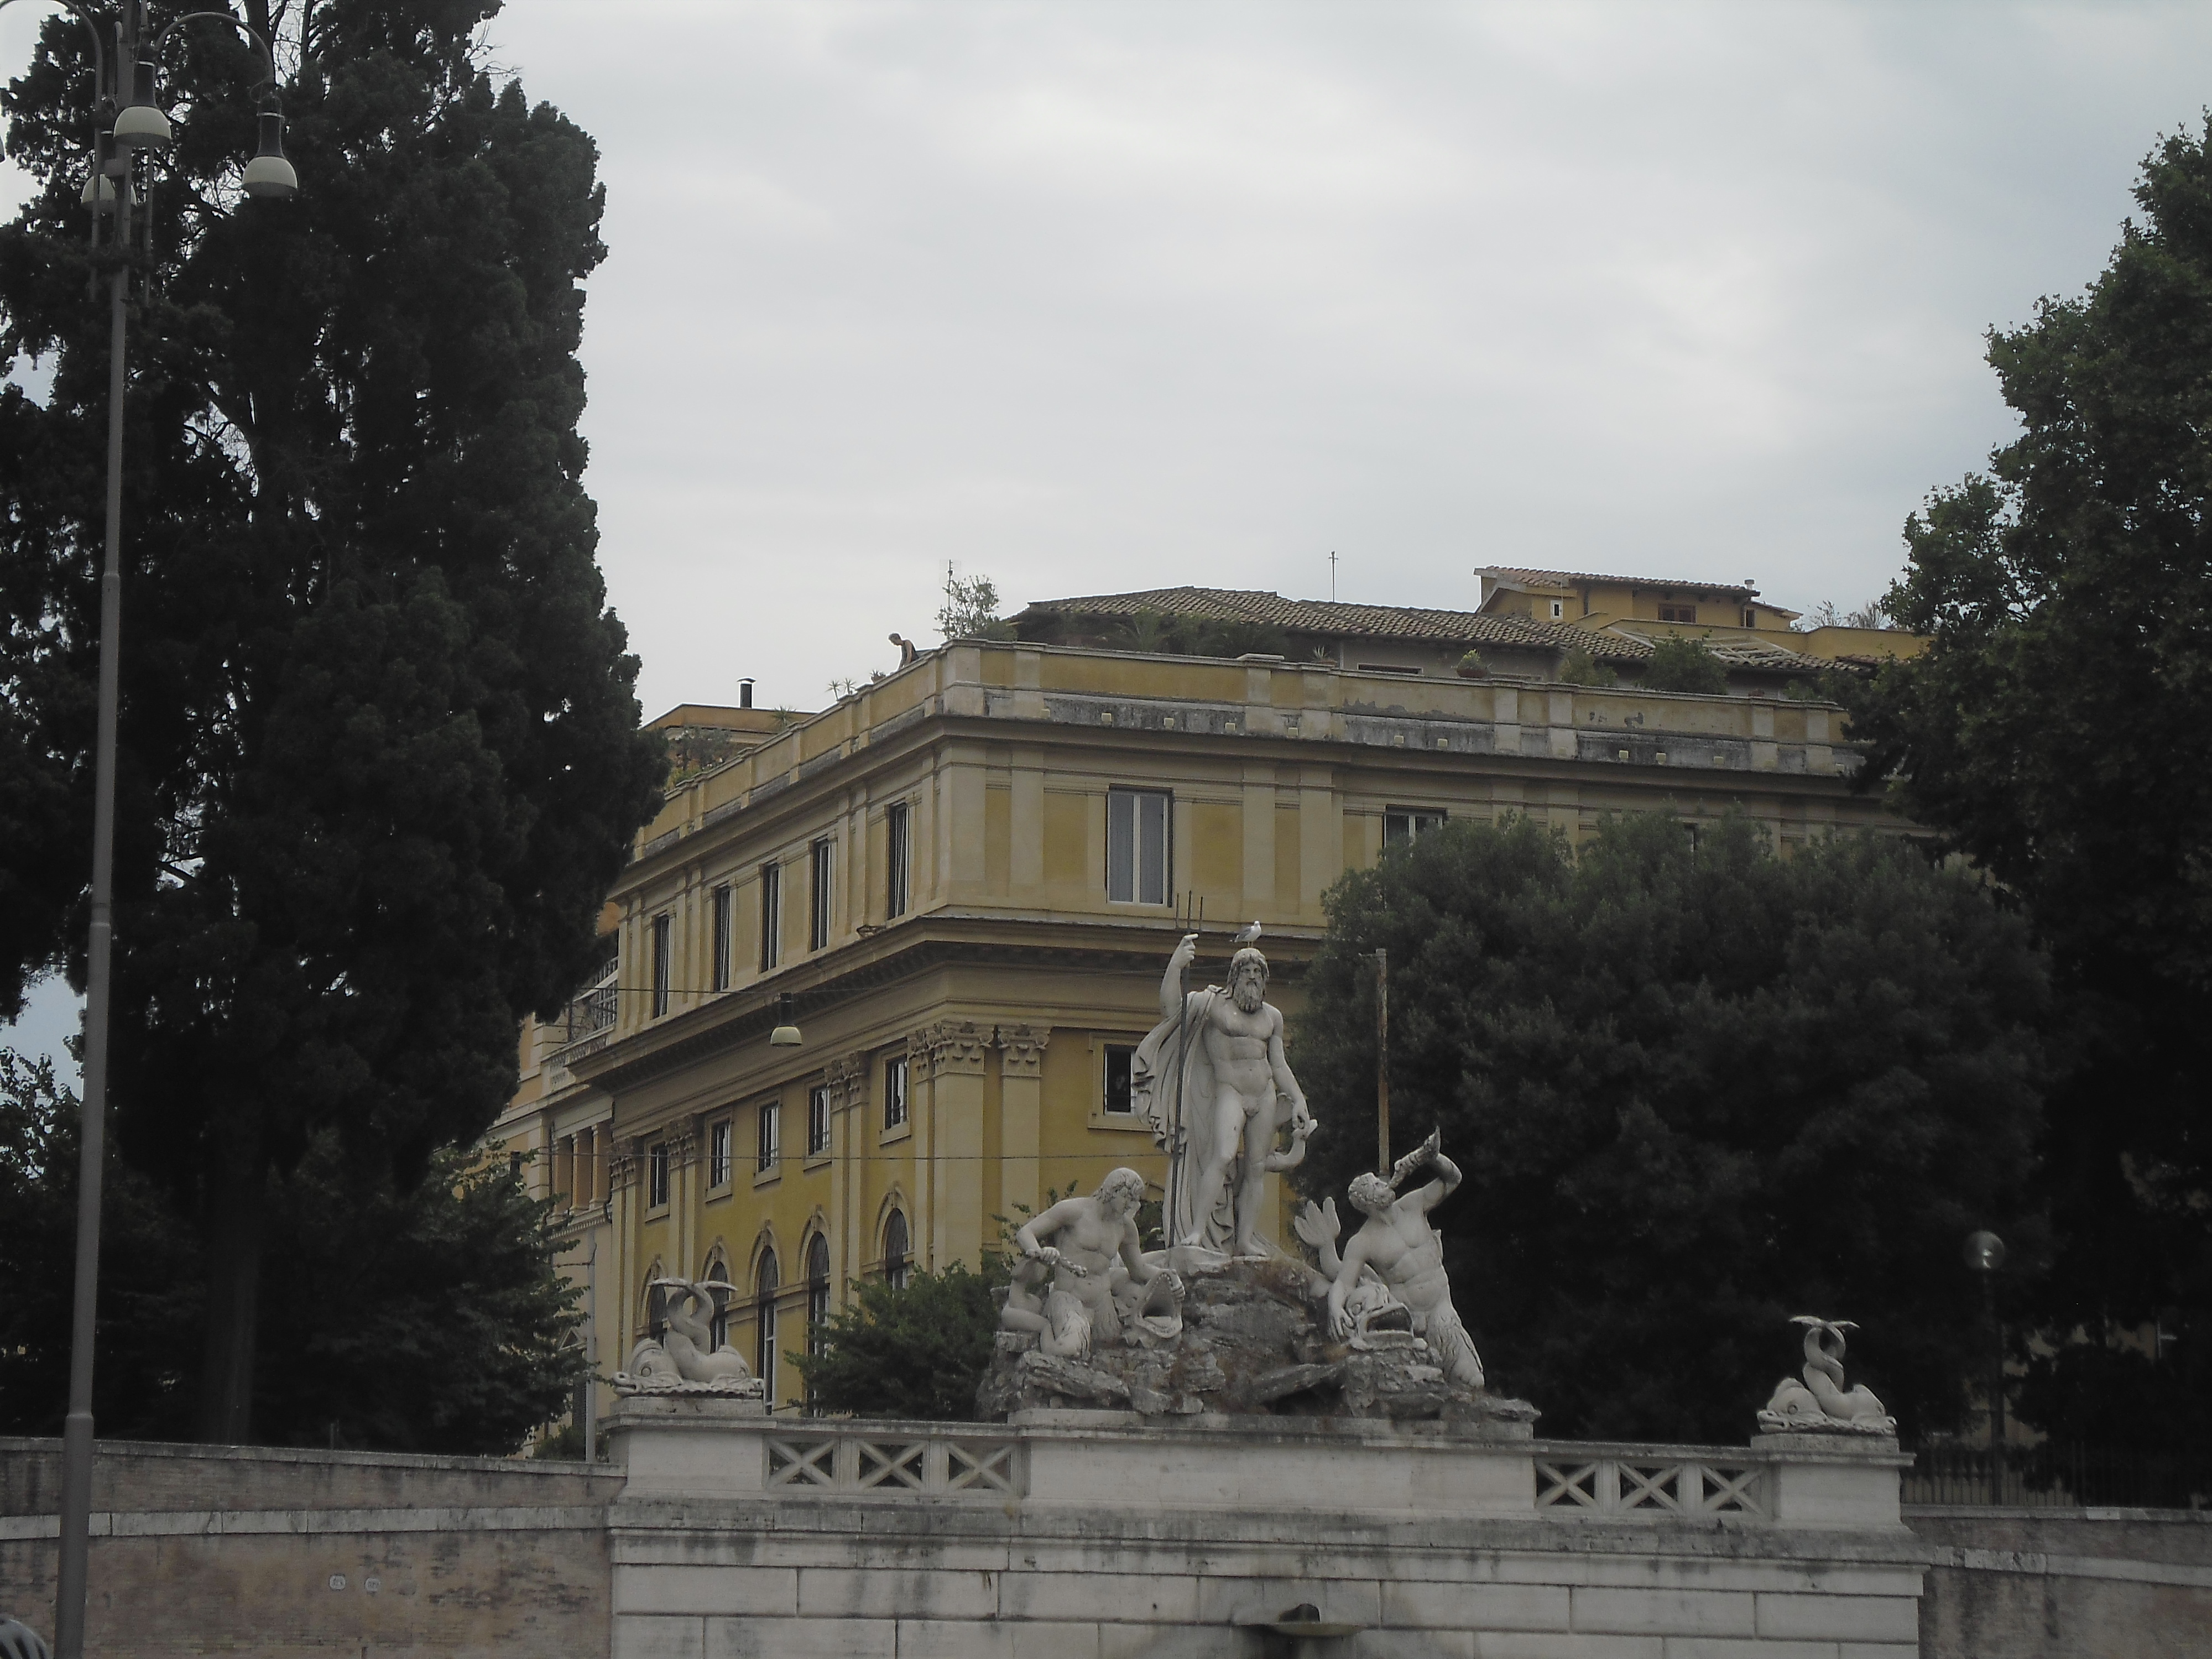 roma-piazza-popolo-left-side-aug13